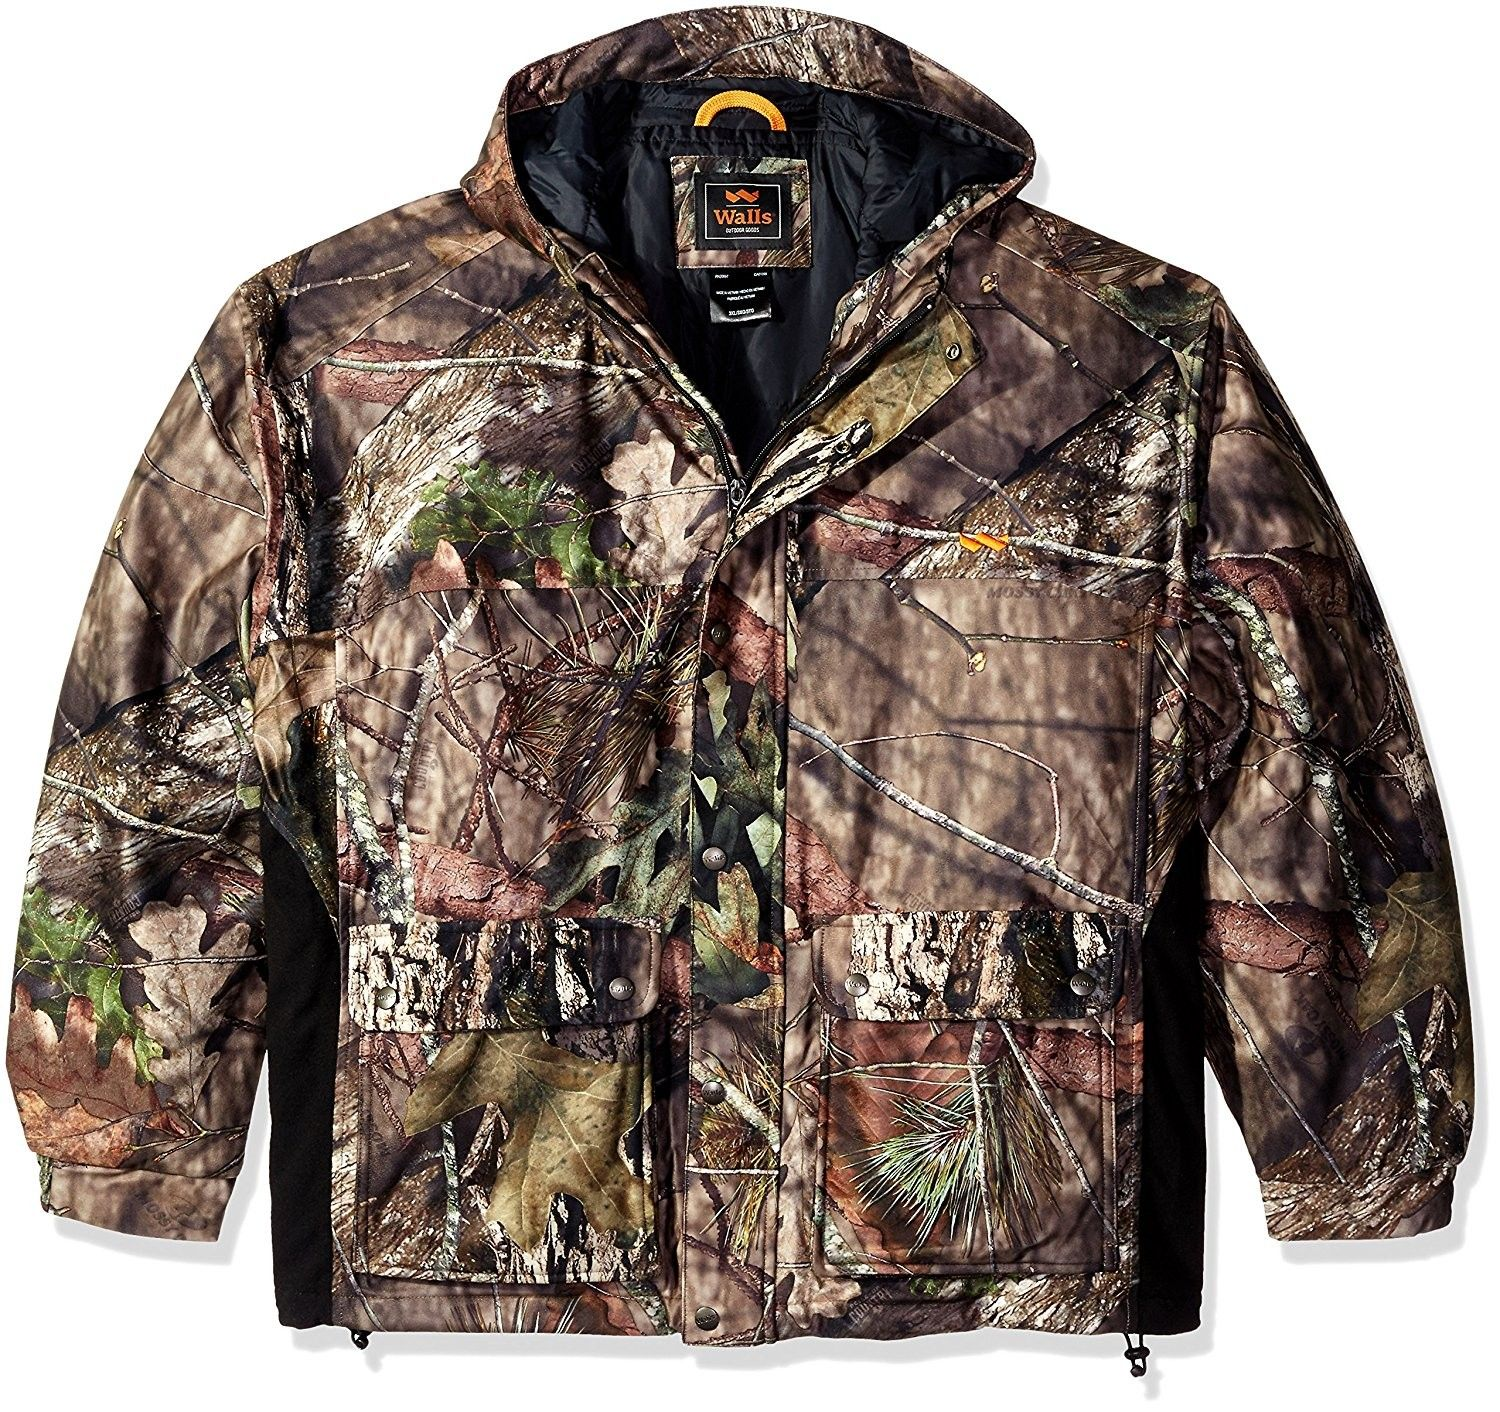 men s hunting power buy insulated jacket big mossy oak on walls men s insulated hunting coveralls id=93414